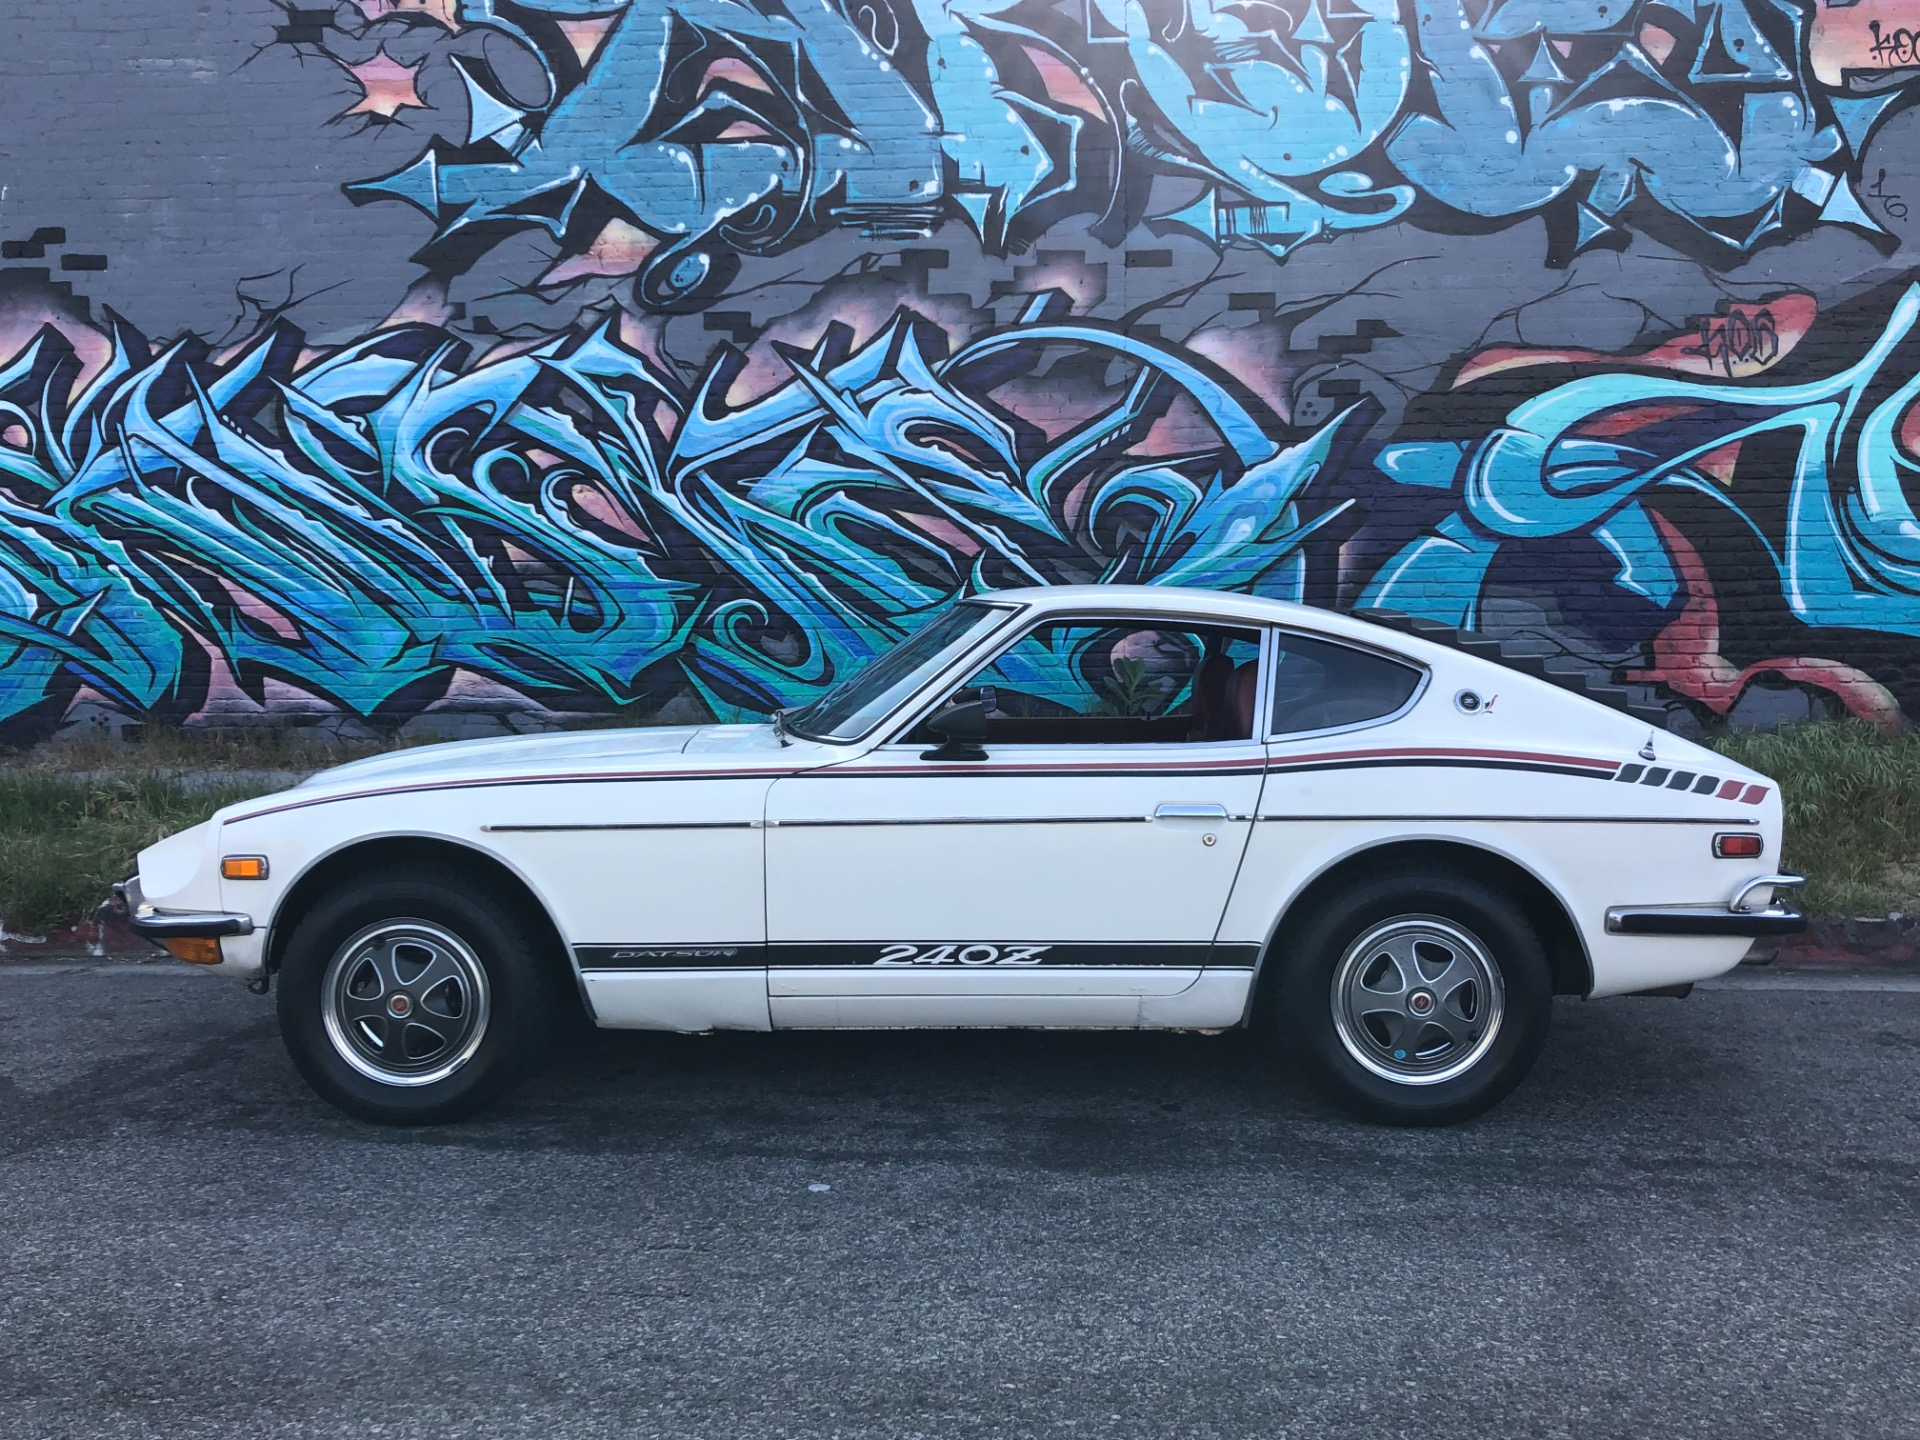 Used 1972 Datsun 240 Z For Sale ($16,750) | SportsCar LA Stock #A1117